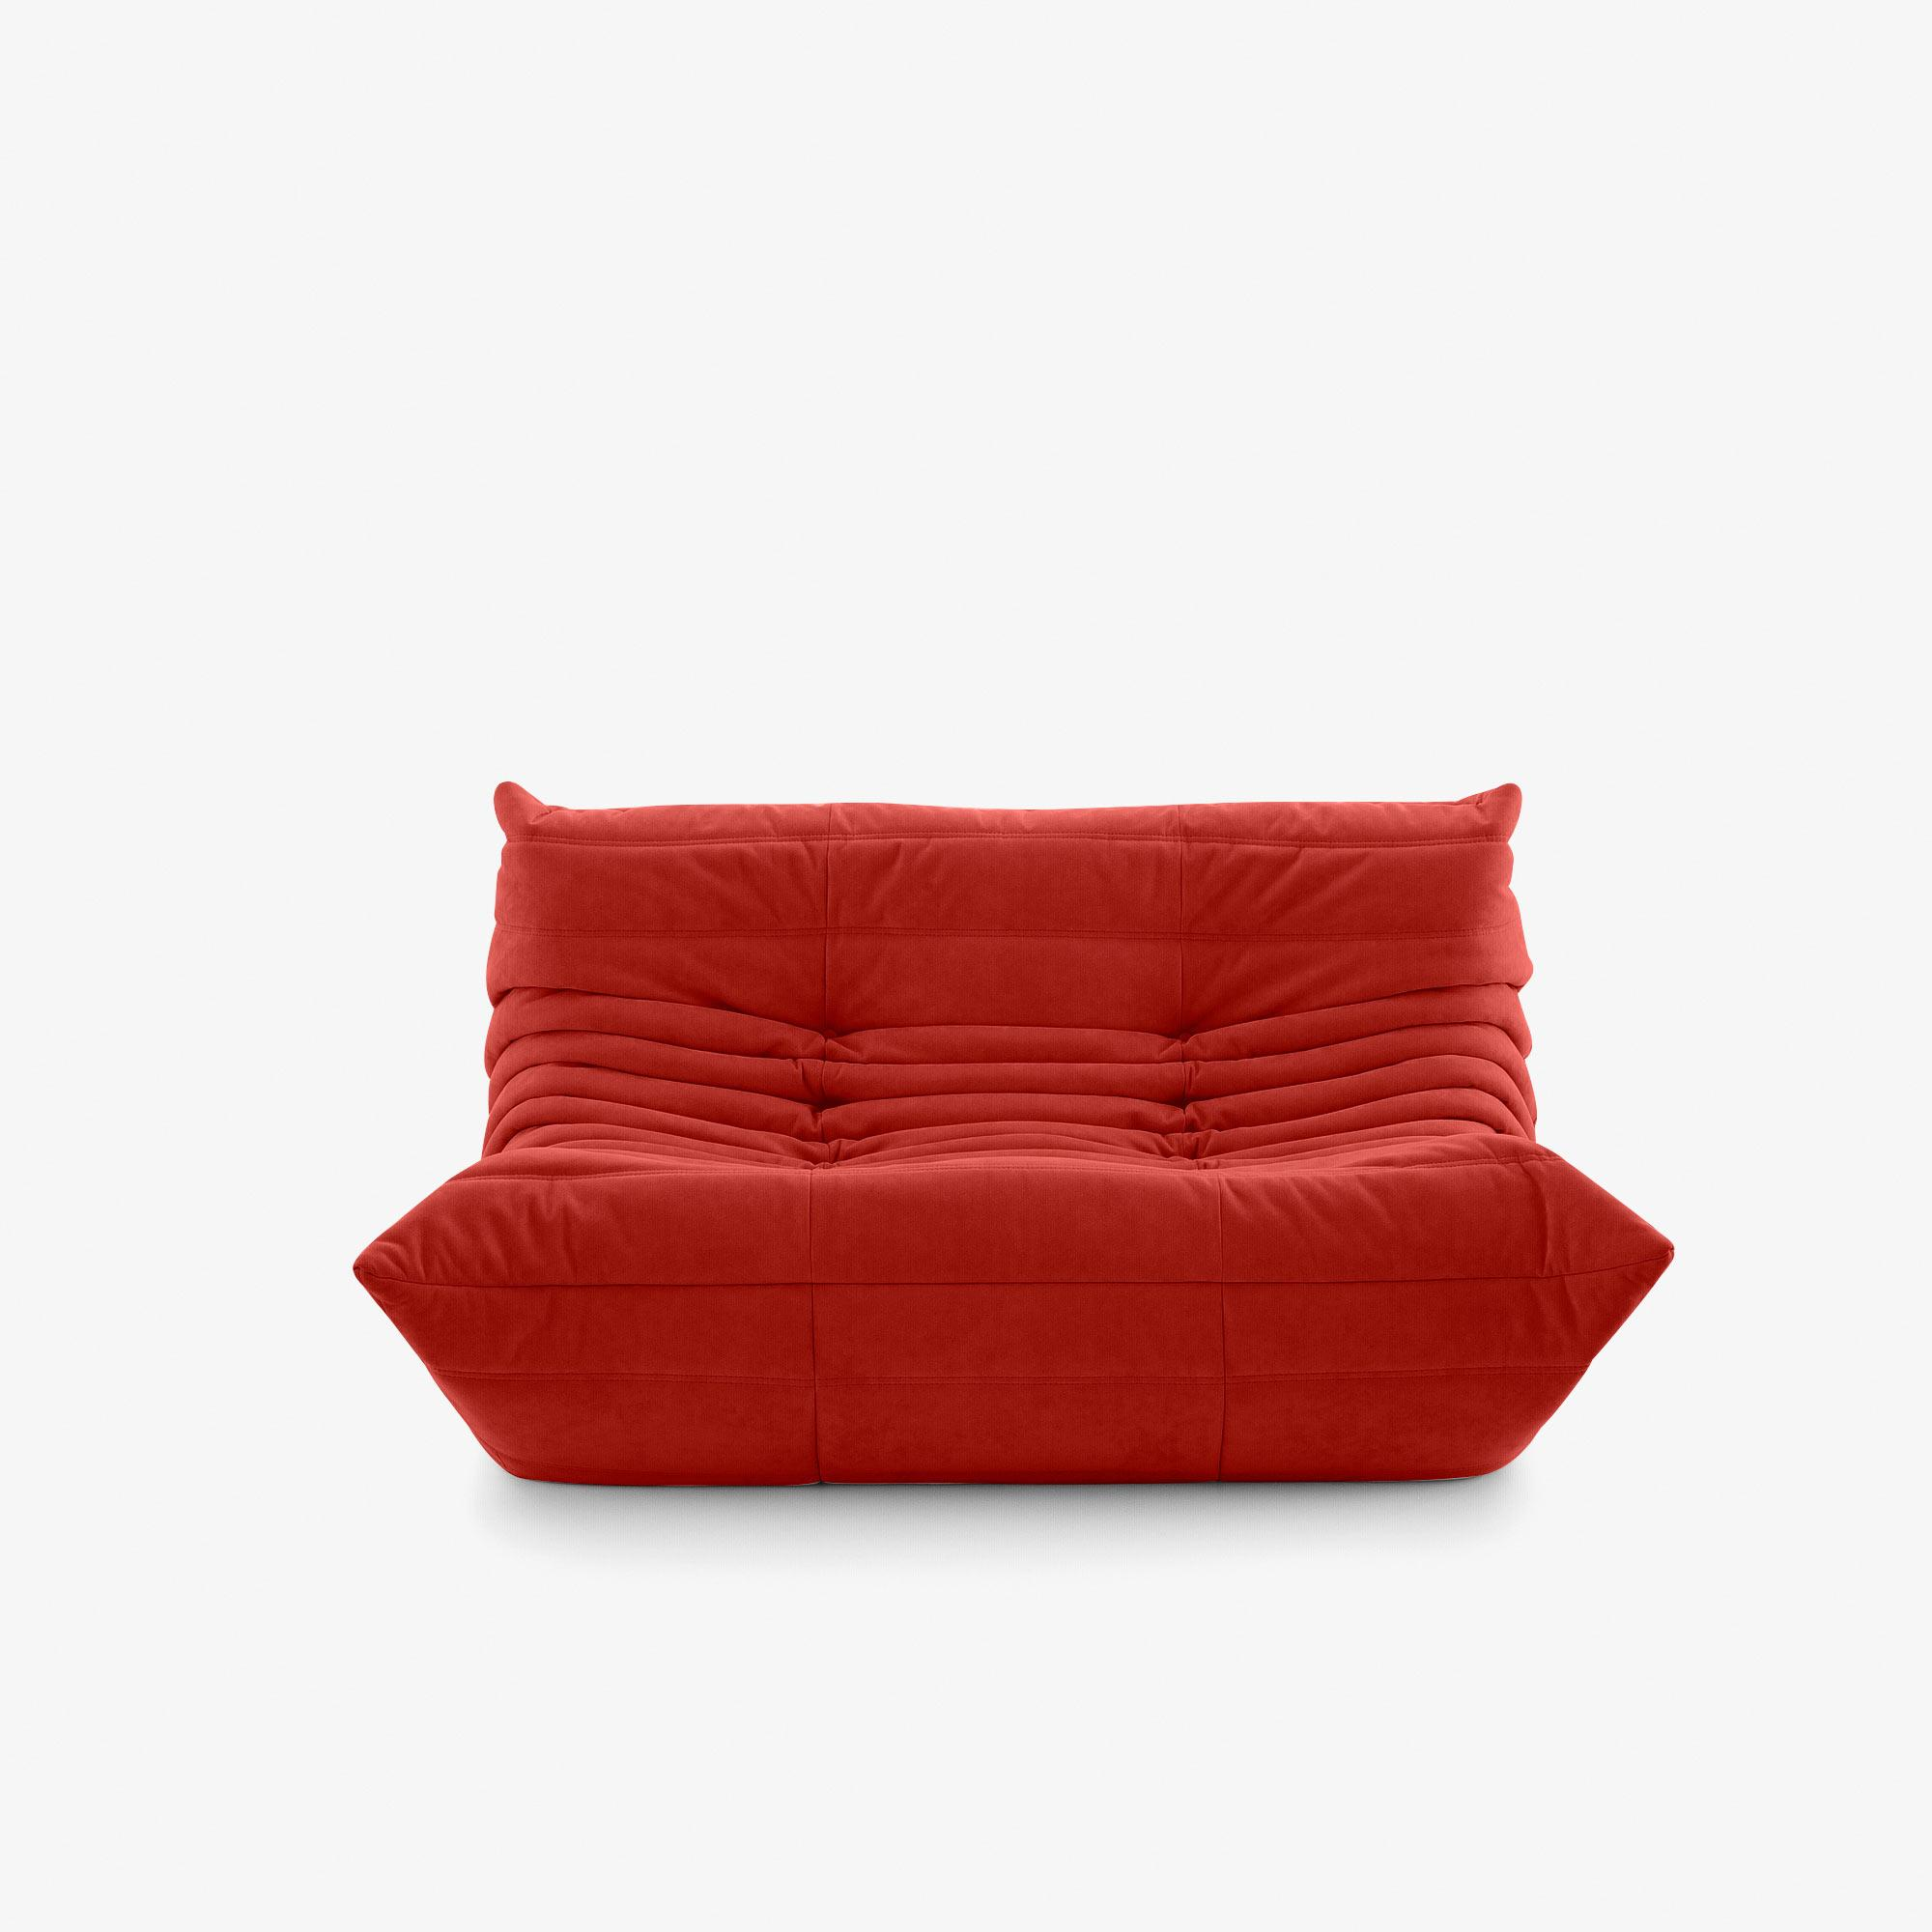 LOVESEAT WITHOUT ARMS Ligne Roset